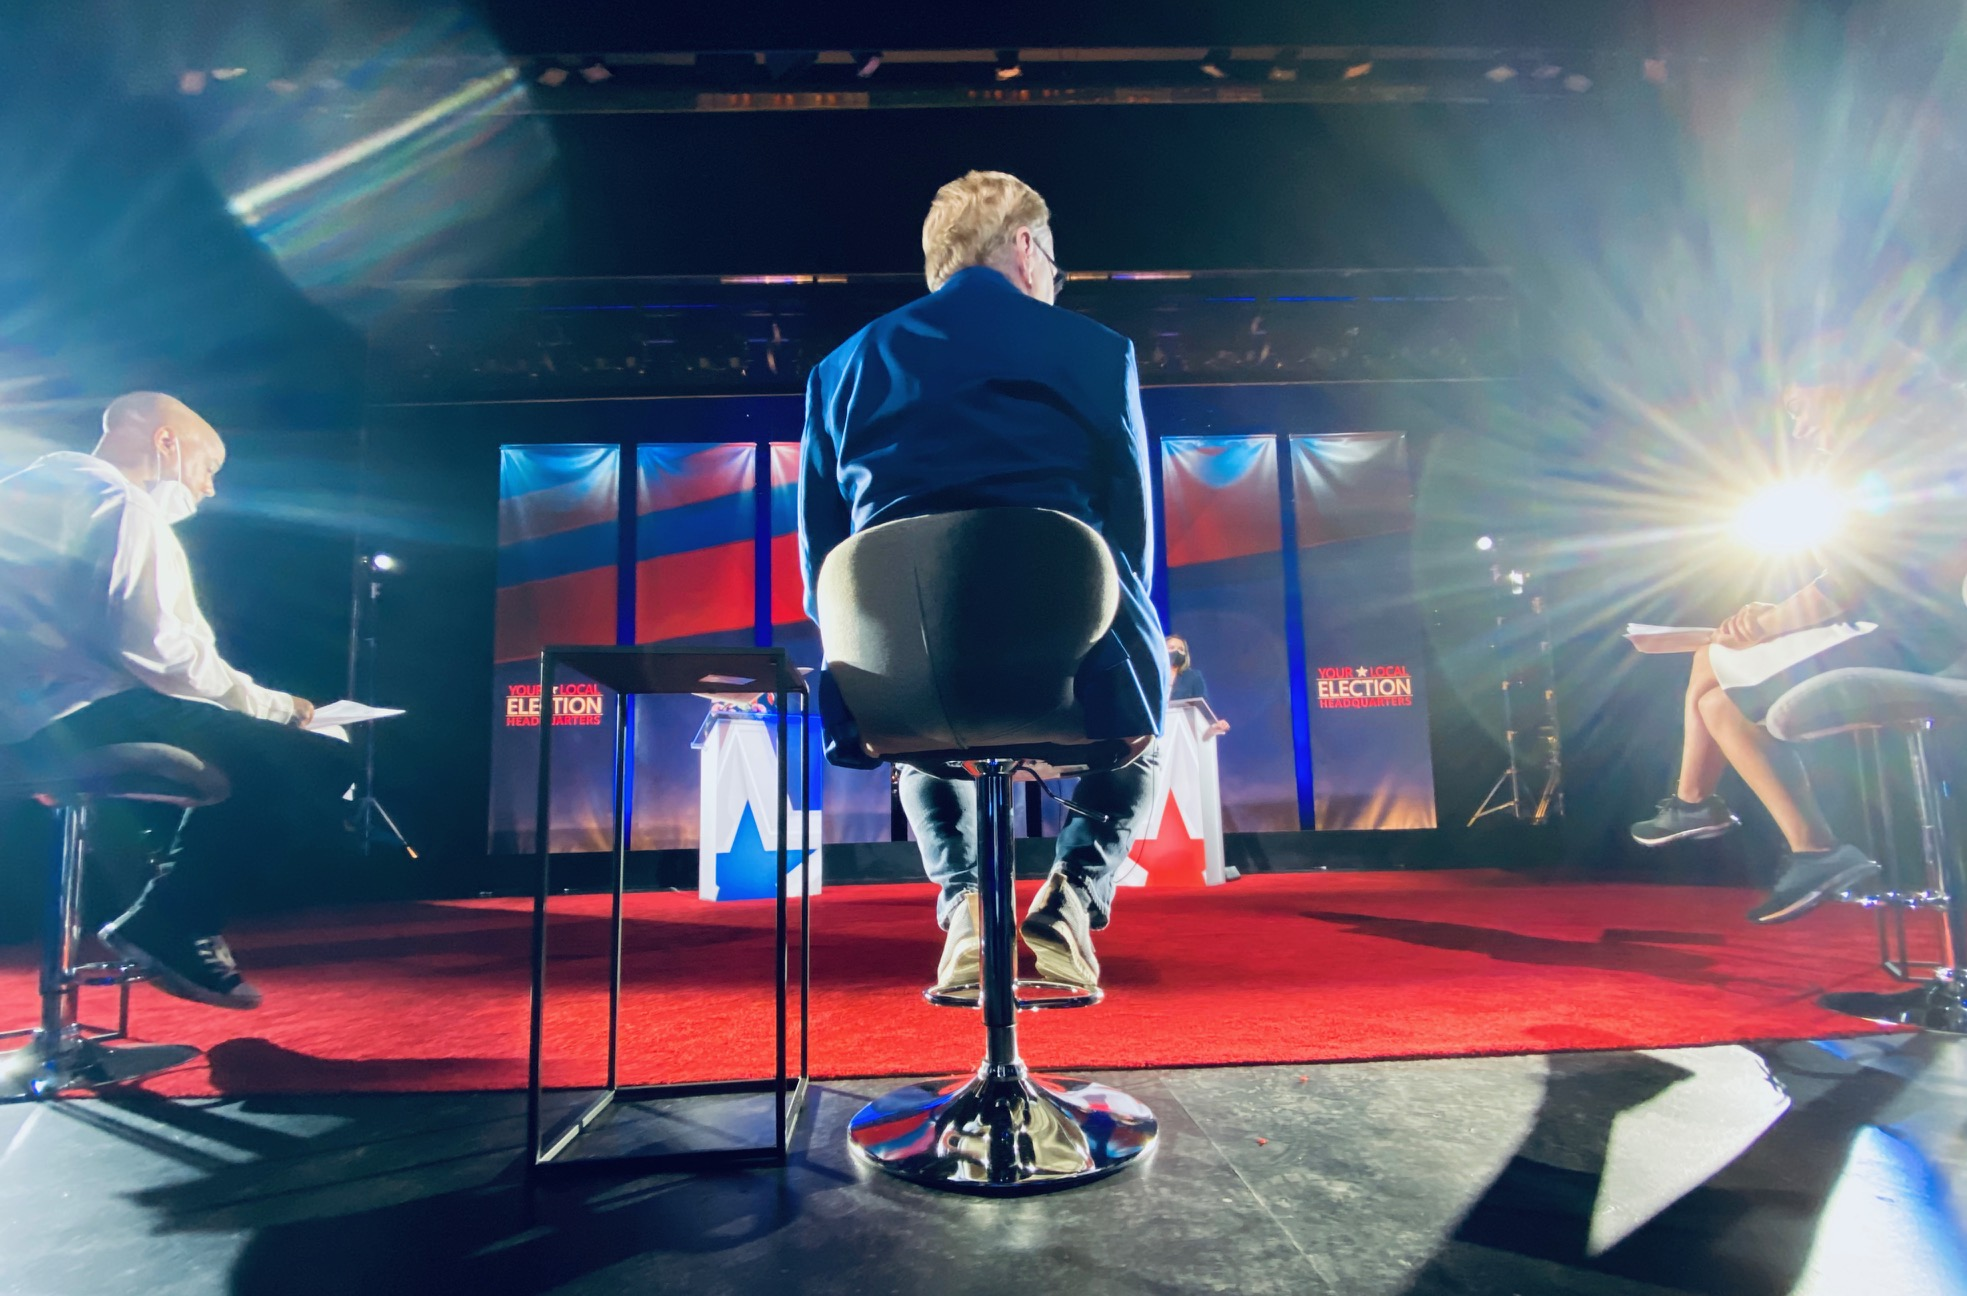 Rehearsals at the Bullock Texas State History Museum for the U.S. Senate Debate - Texas (Nexstar Photo)